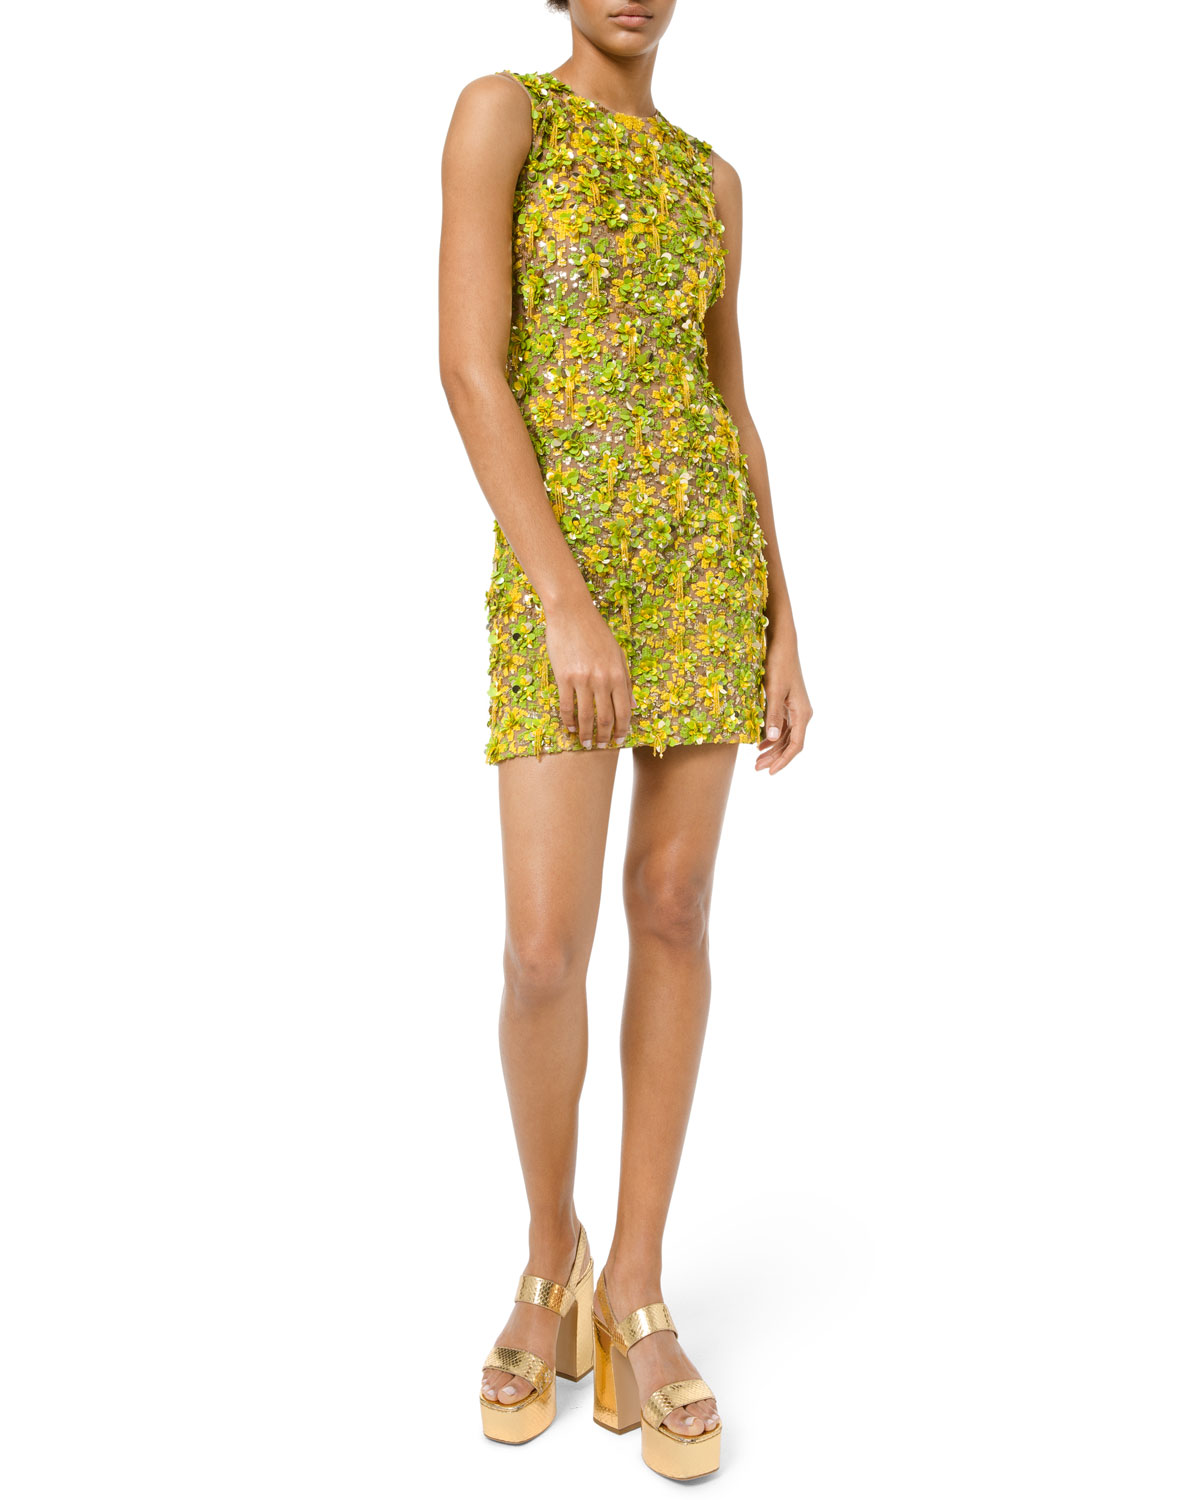 37970551f45 Michael Kors Collection Daisy Lime Embellished Sleeveless Dress ...